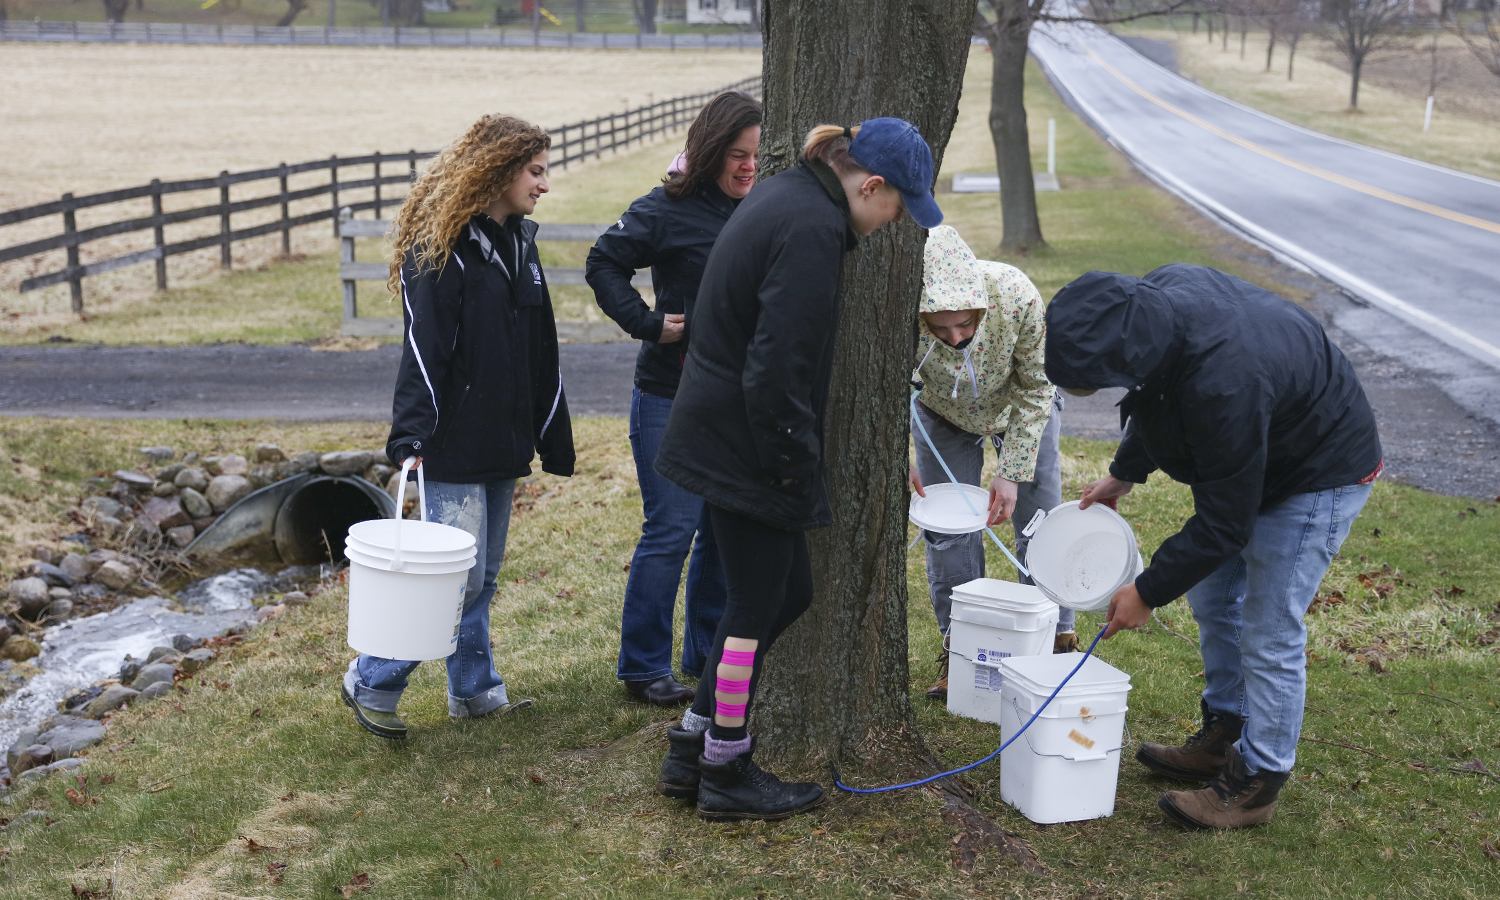 Food Systems Program Manager and Fribolin Farm Intern Hannah Wood '18 lead a session on tapping maple trees for maple syrup with student volunteers at the HWS Fribolin Farm.